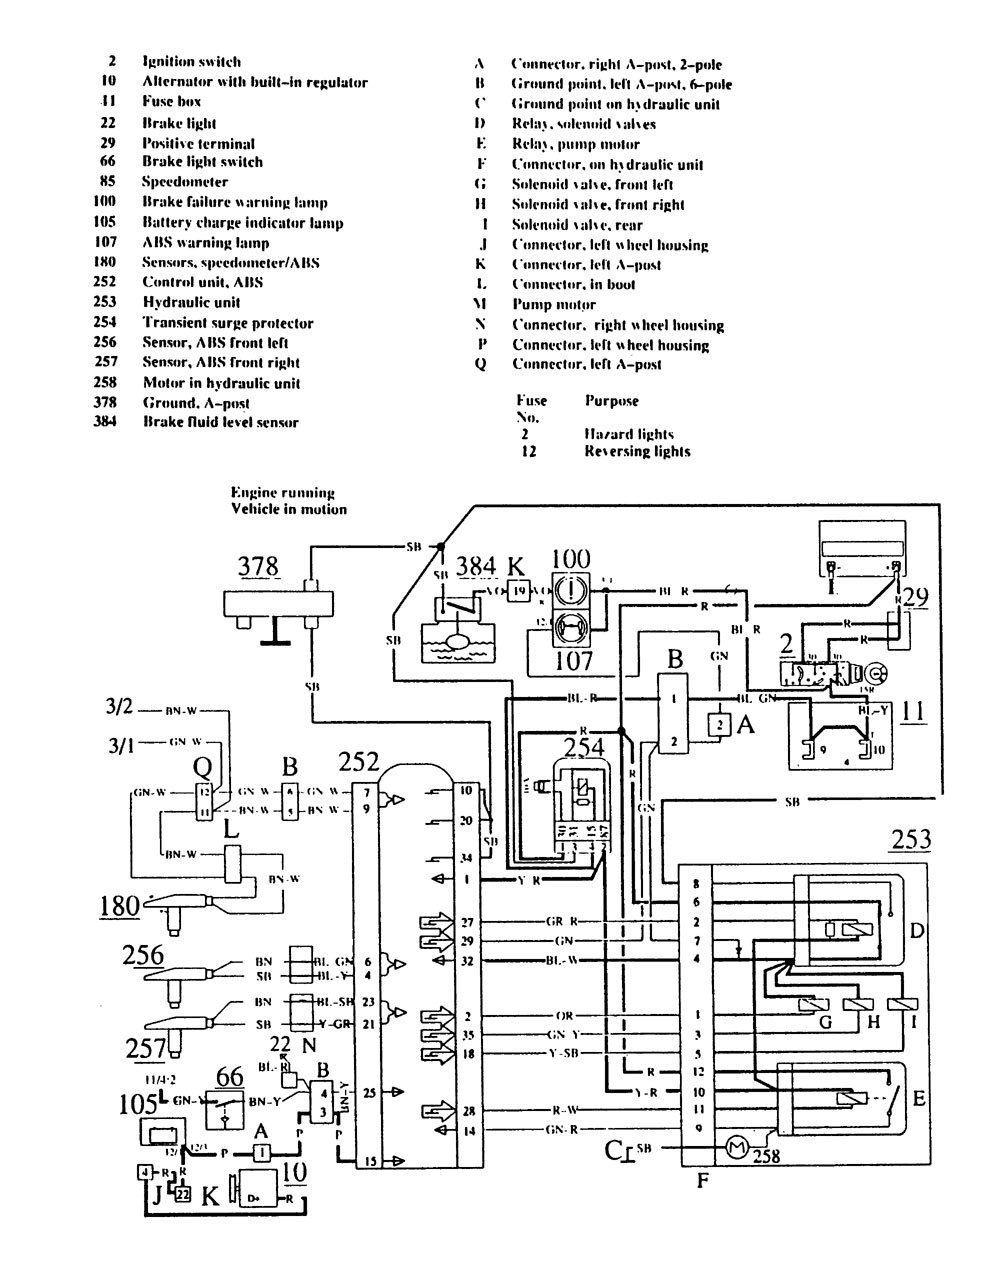 Volvo 740 Headlight Wiring Diagram Opinions About Electrical V70 240 Co Led Ignition Elsalvadorla Fuel Pump